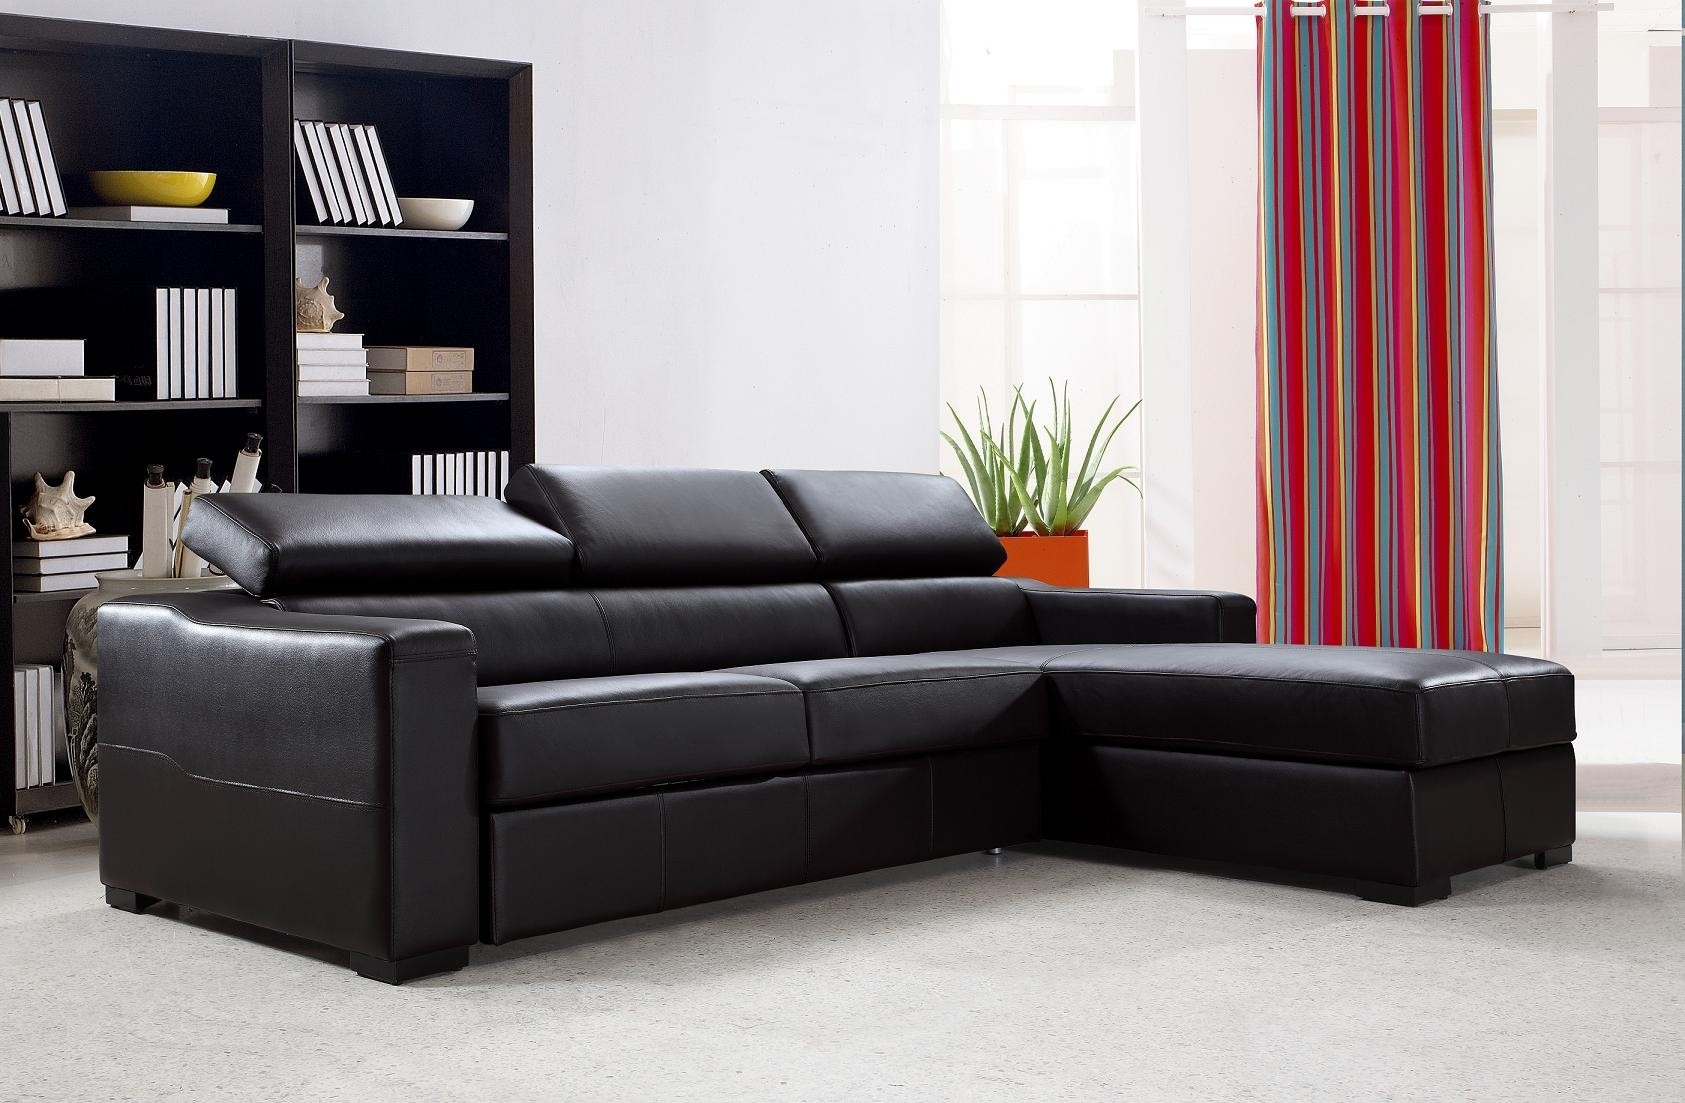 Sofa : Lovely Leather Sofa Bed Sectional Reversible Set With Storage Inside Leather Sofas With Storage (View 4 of 10)